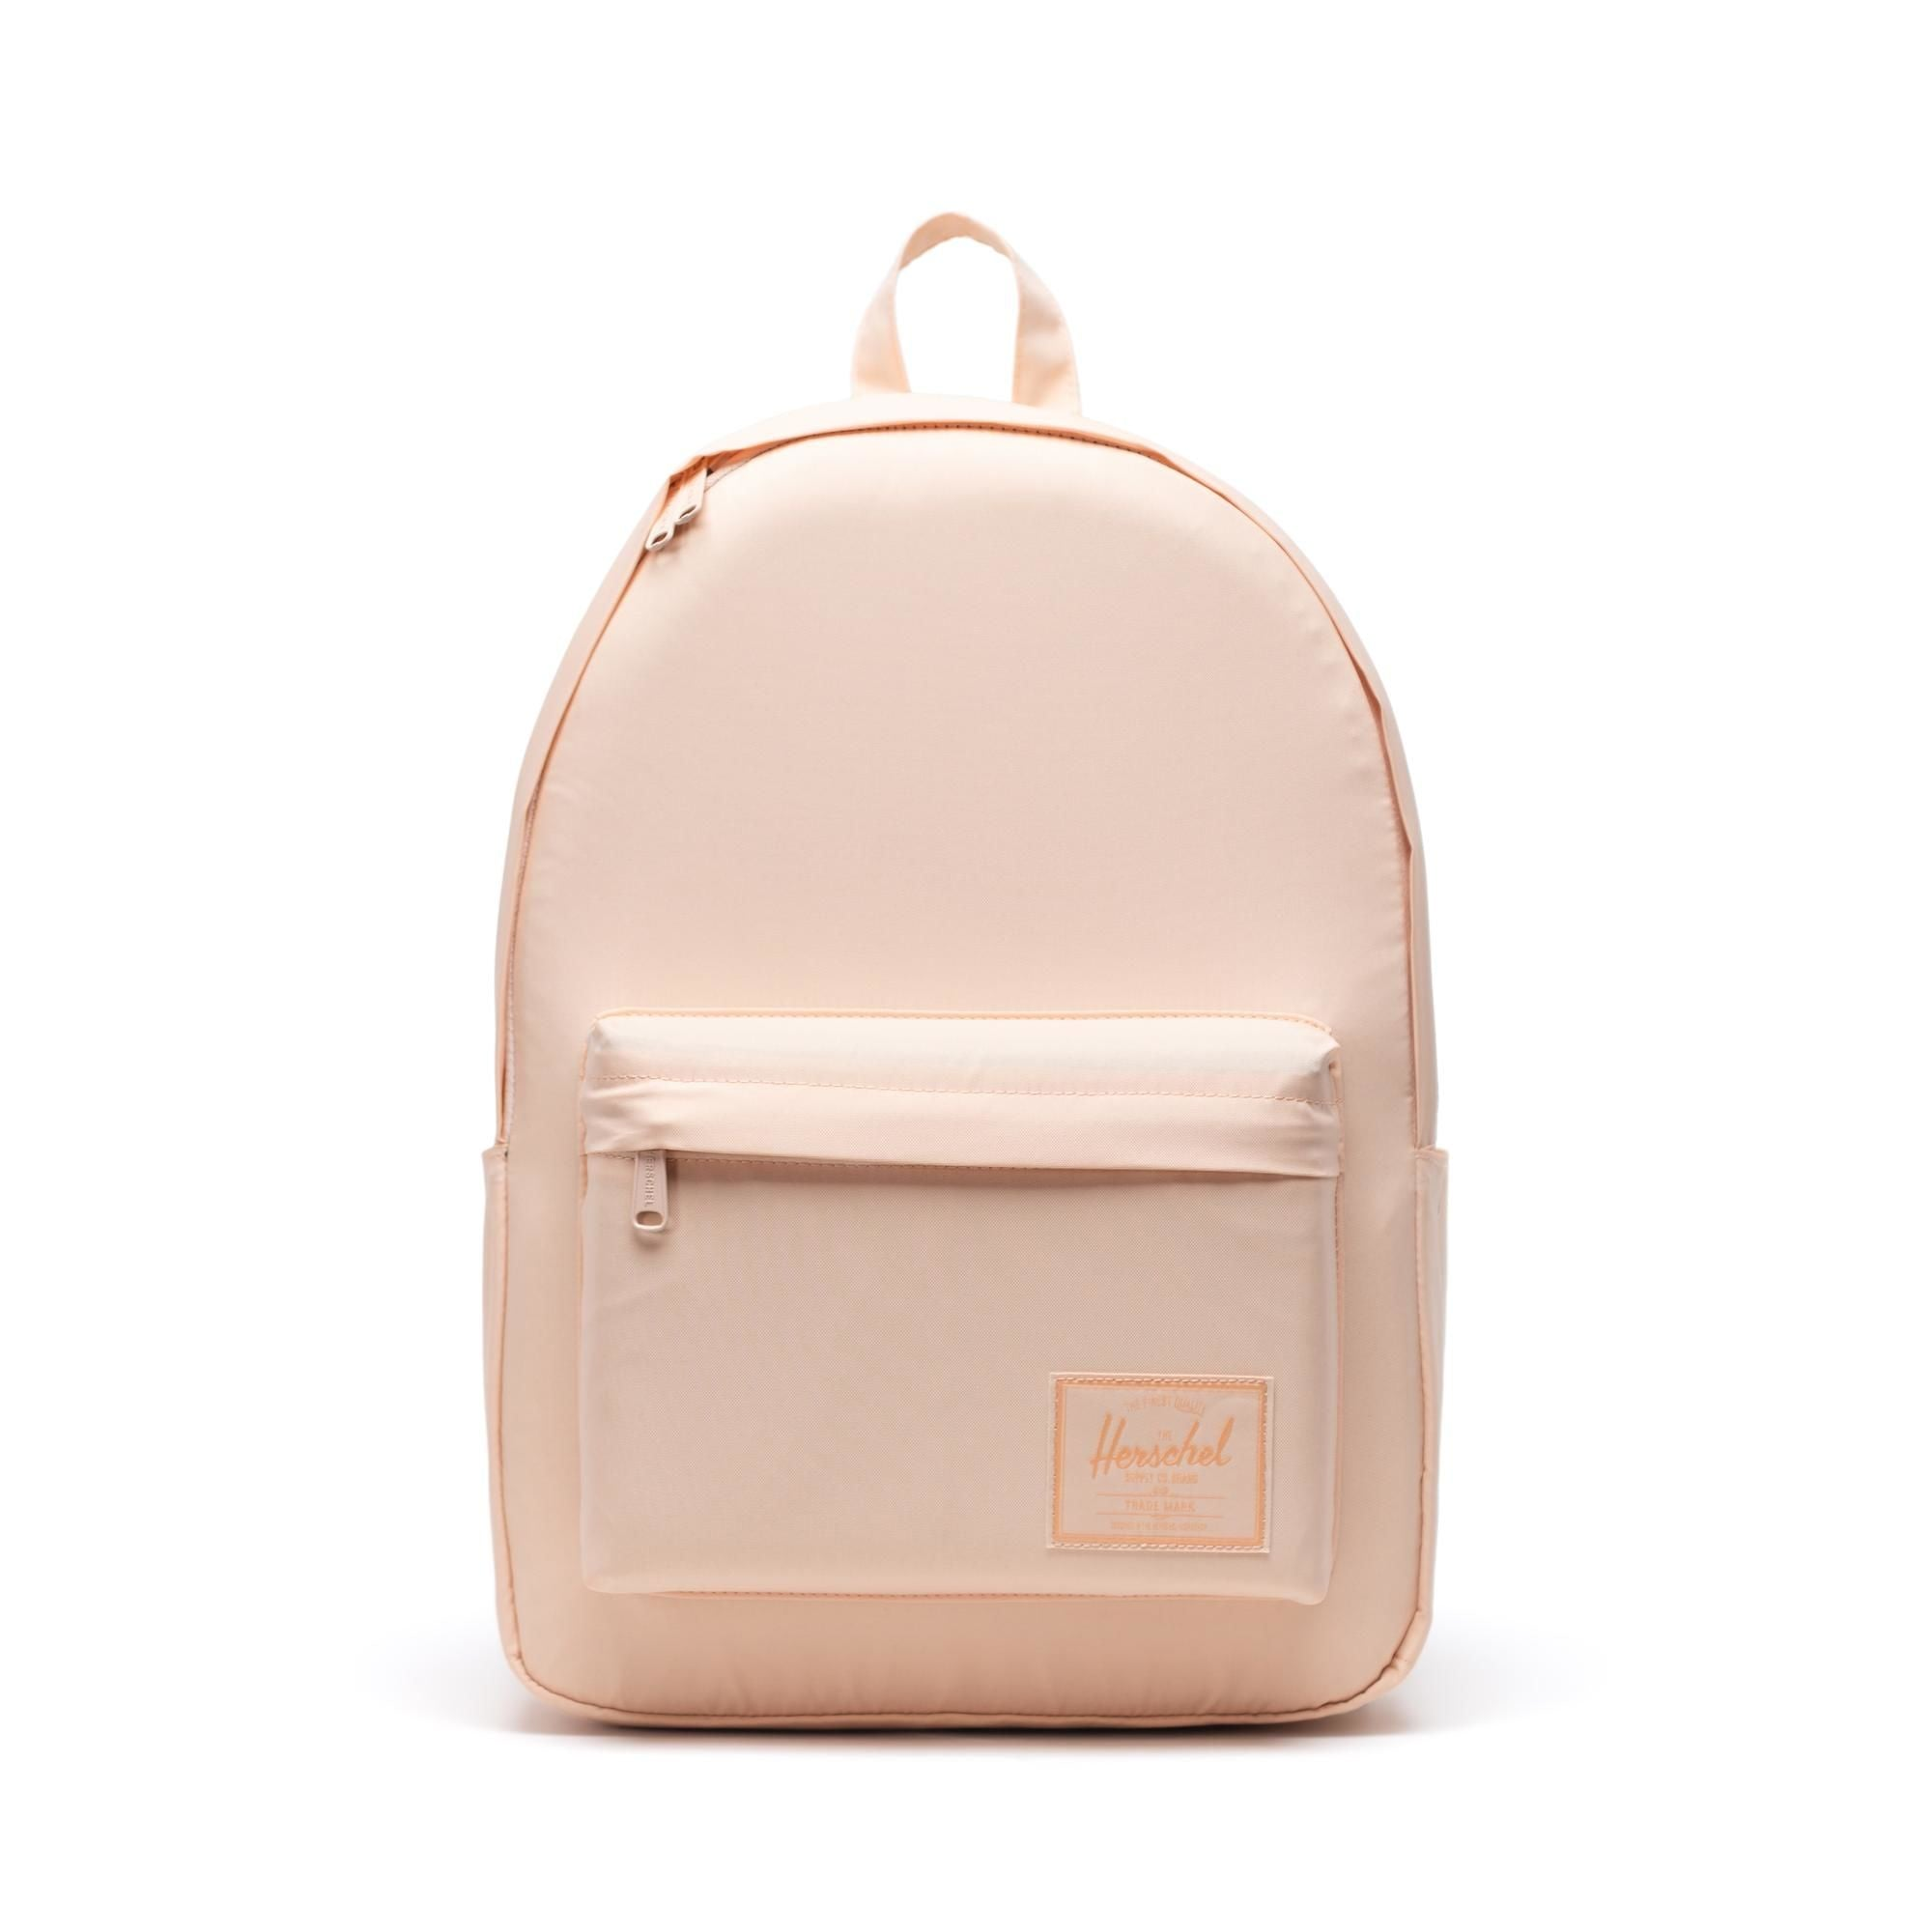 HERSCHEL - CLASSIC LT BACKPACK XL IN APRICOT